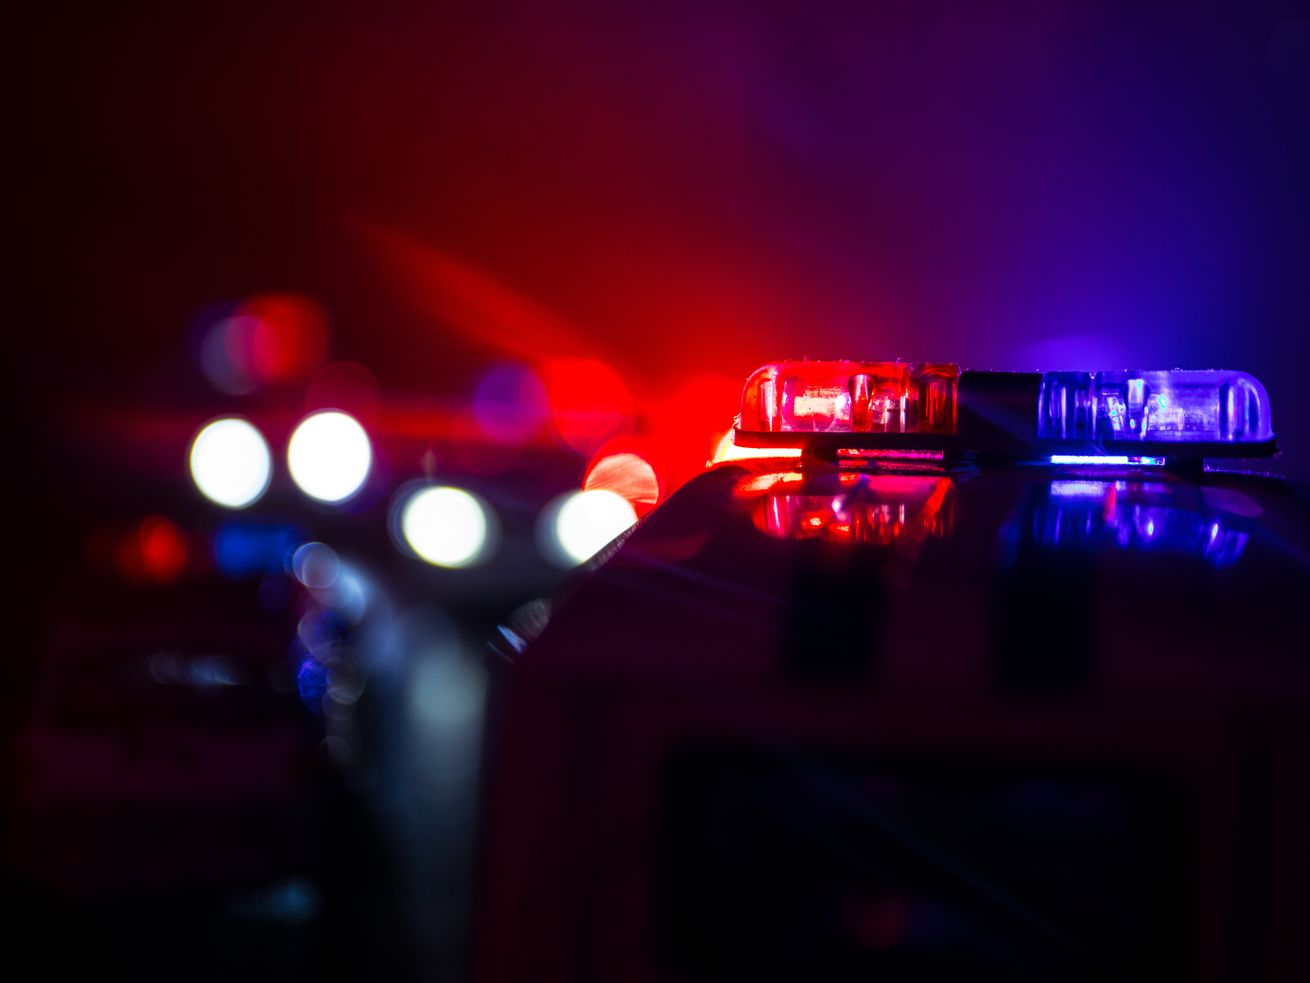 A man was injured in a shooting July 11, 2021, on the Stevenson Expressway.